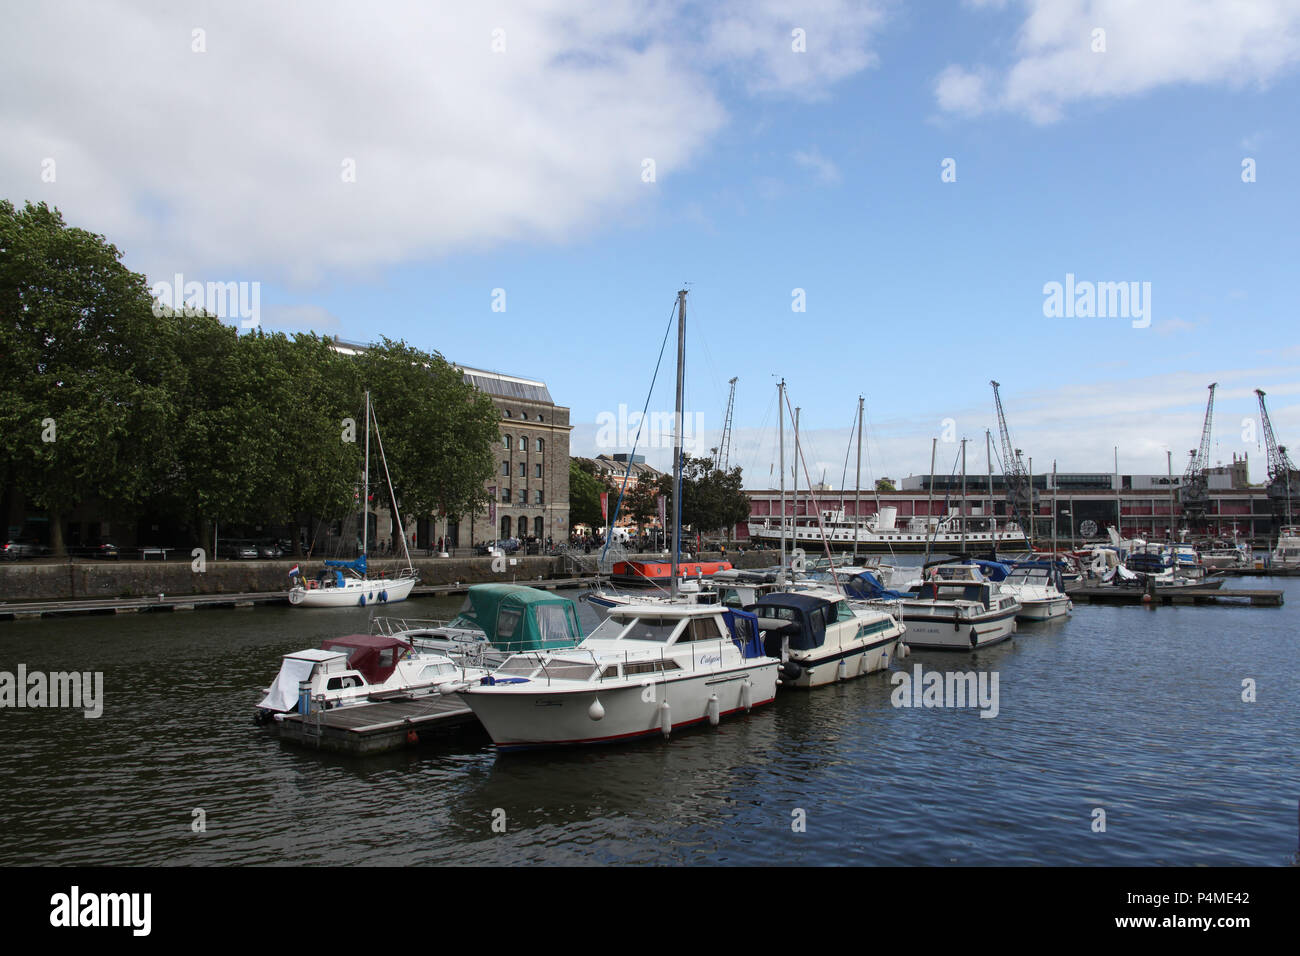 Yachts at Broad Quay in Bristol, England. - Stock Image